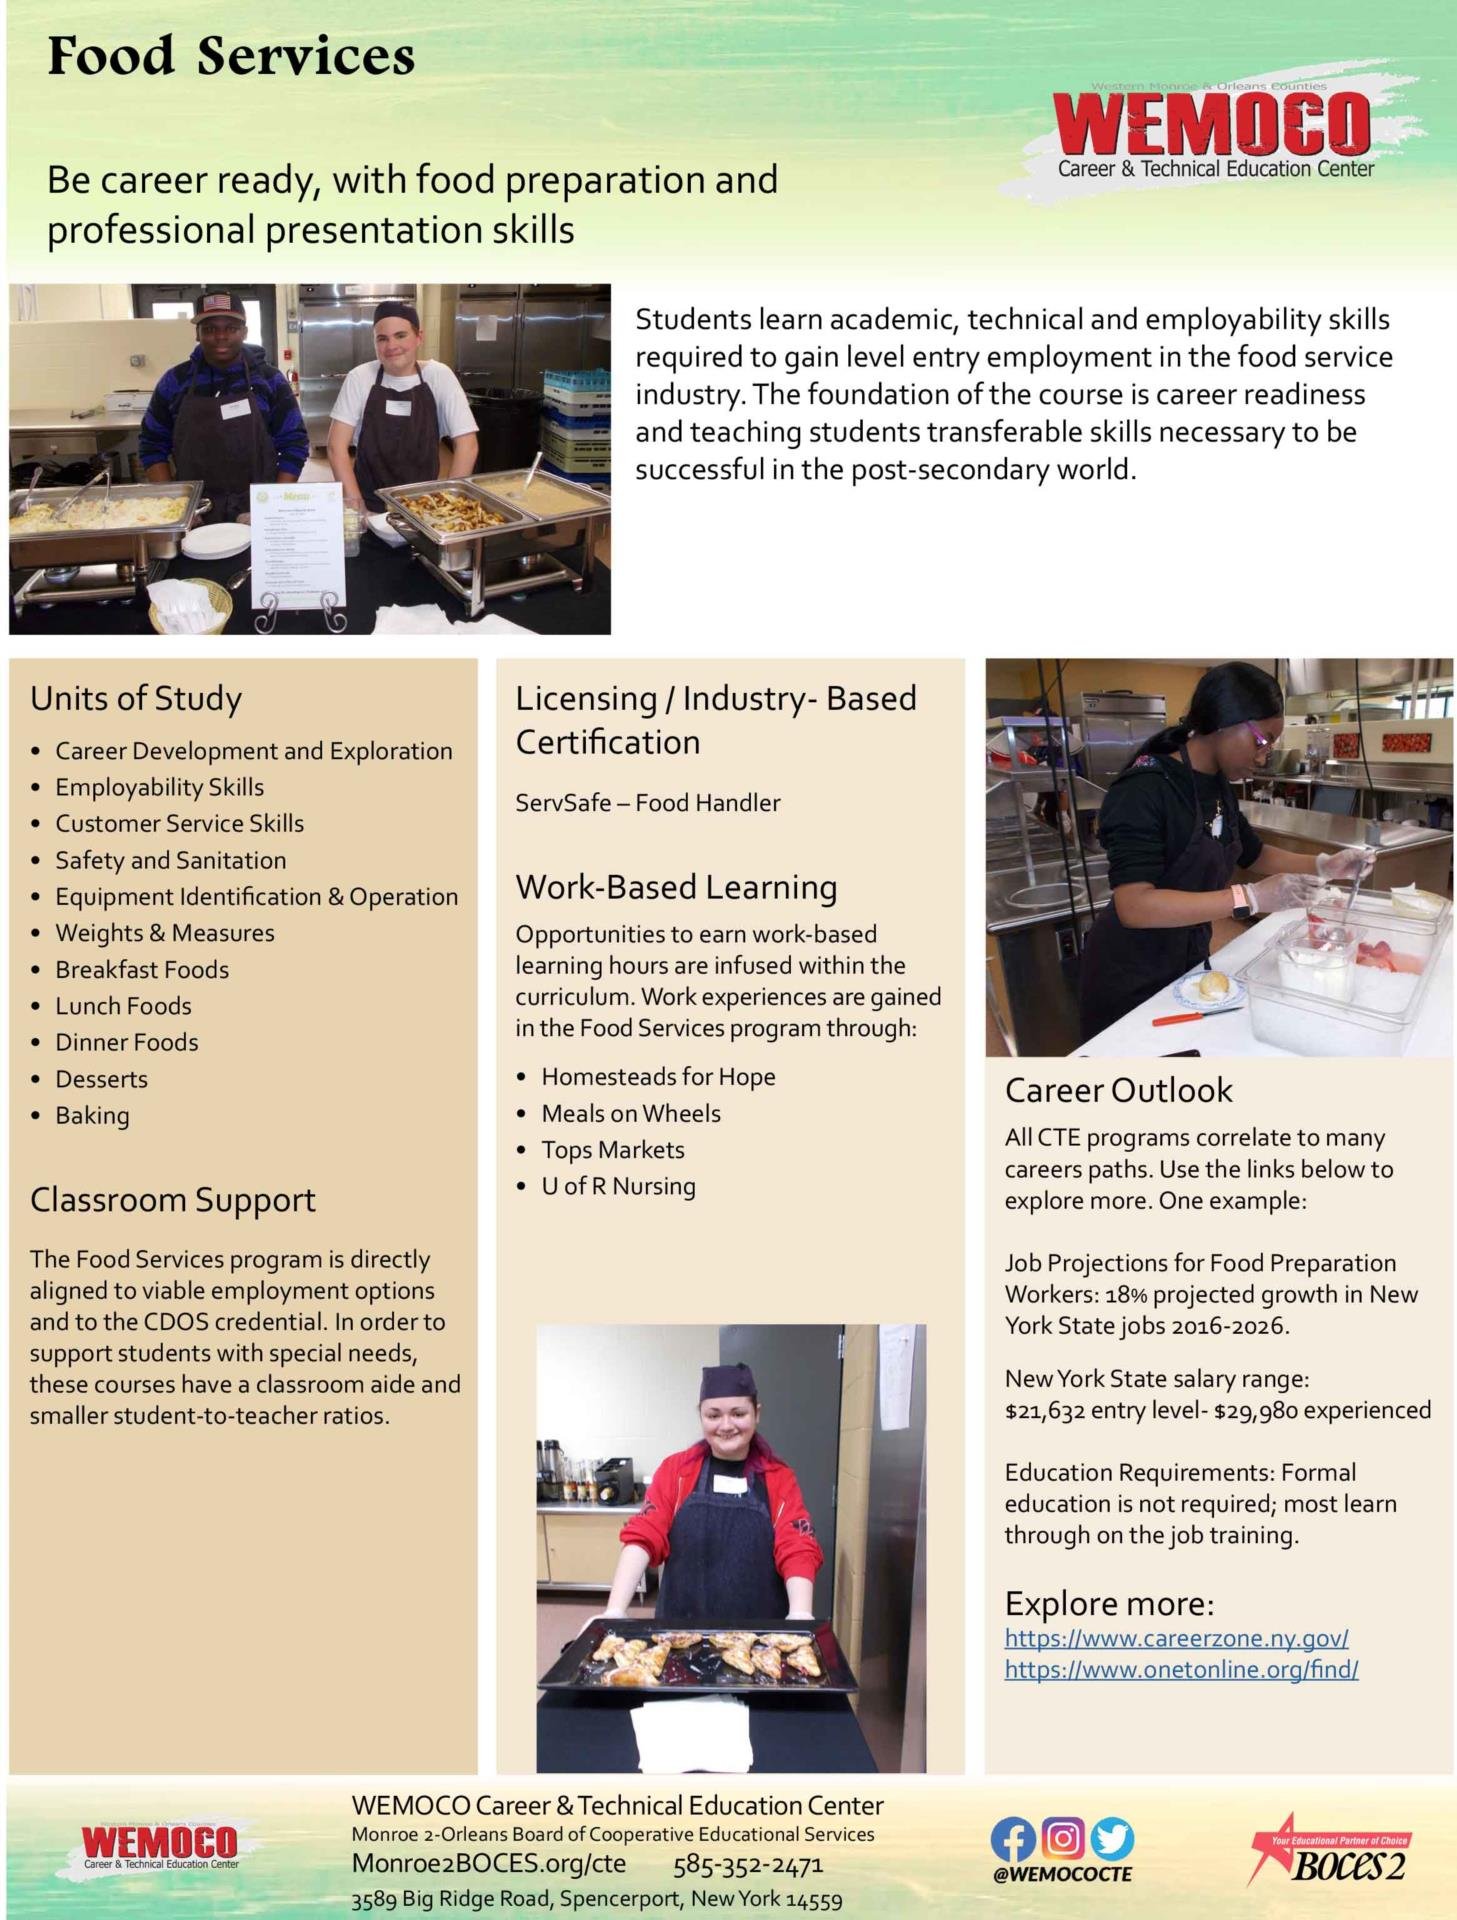 Download a PDF overview of the Food Services program information